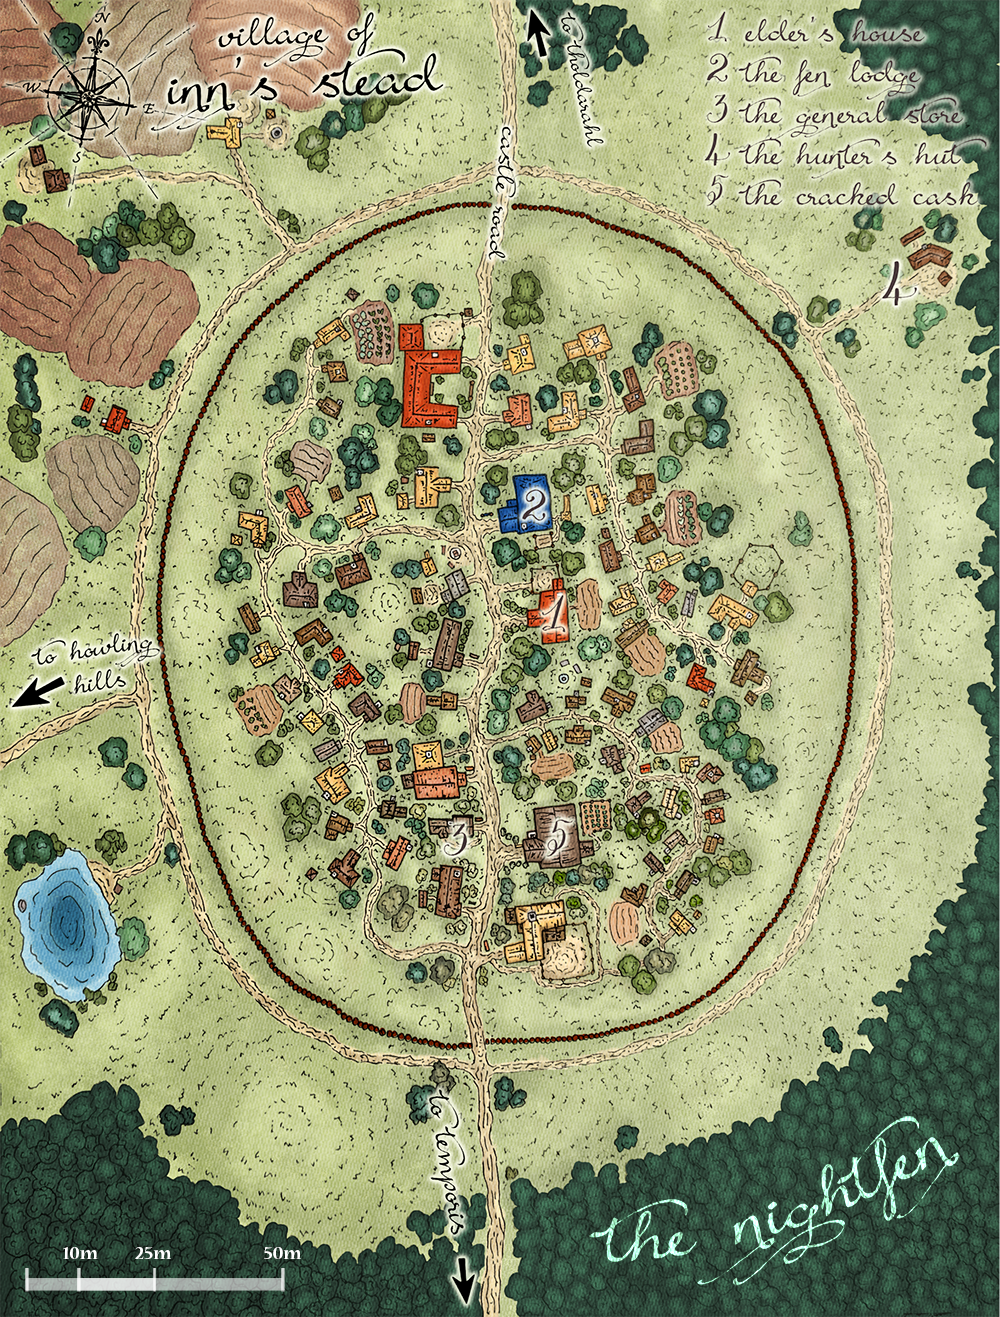 DnD Town Map By Madwing On DeviantArt